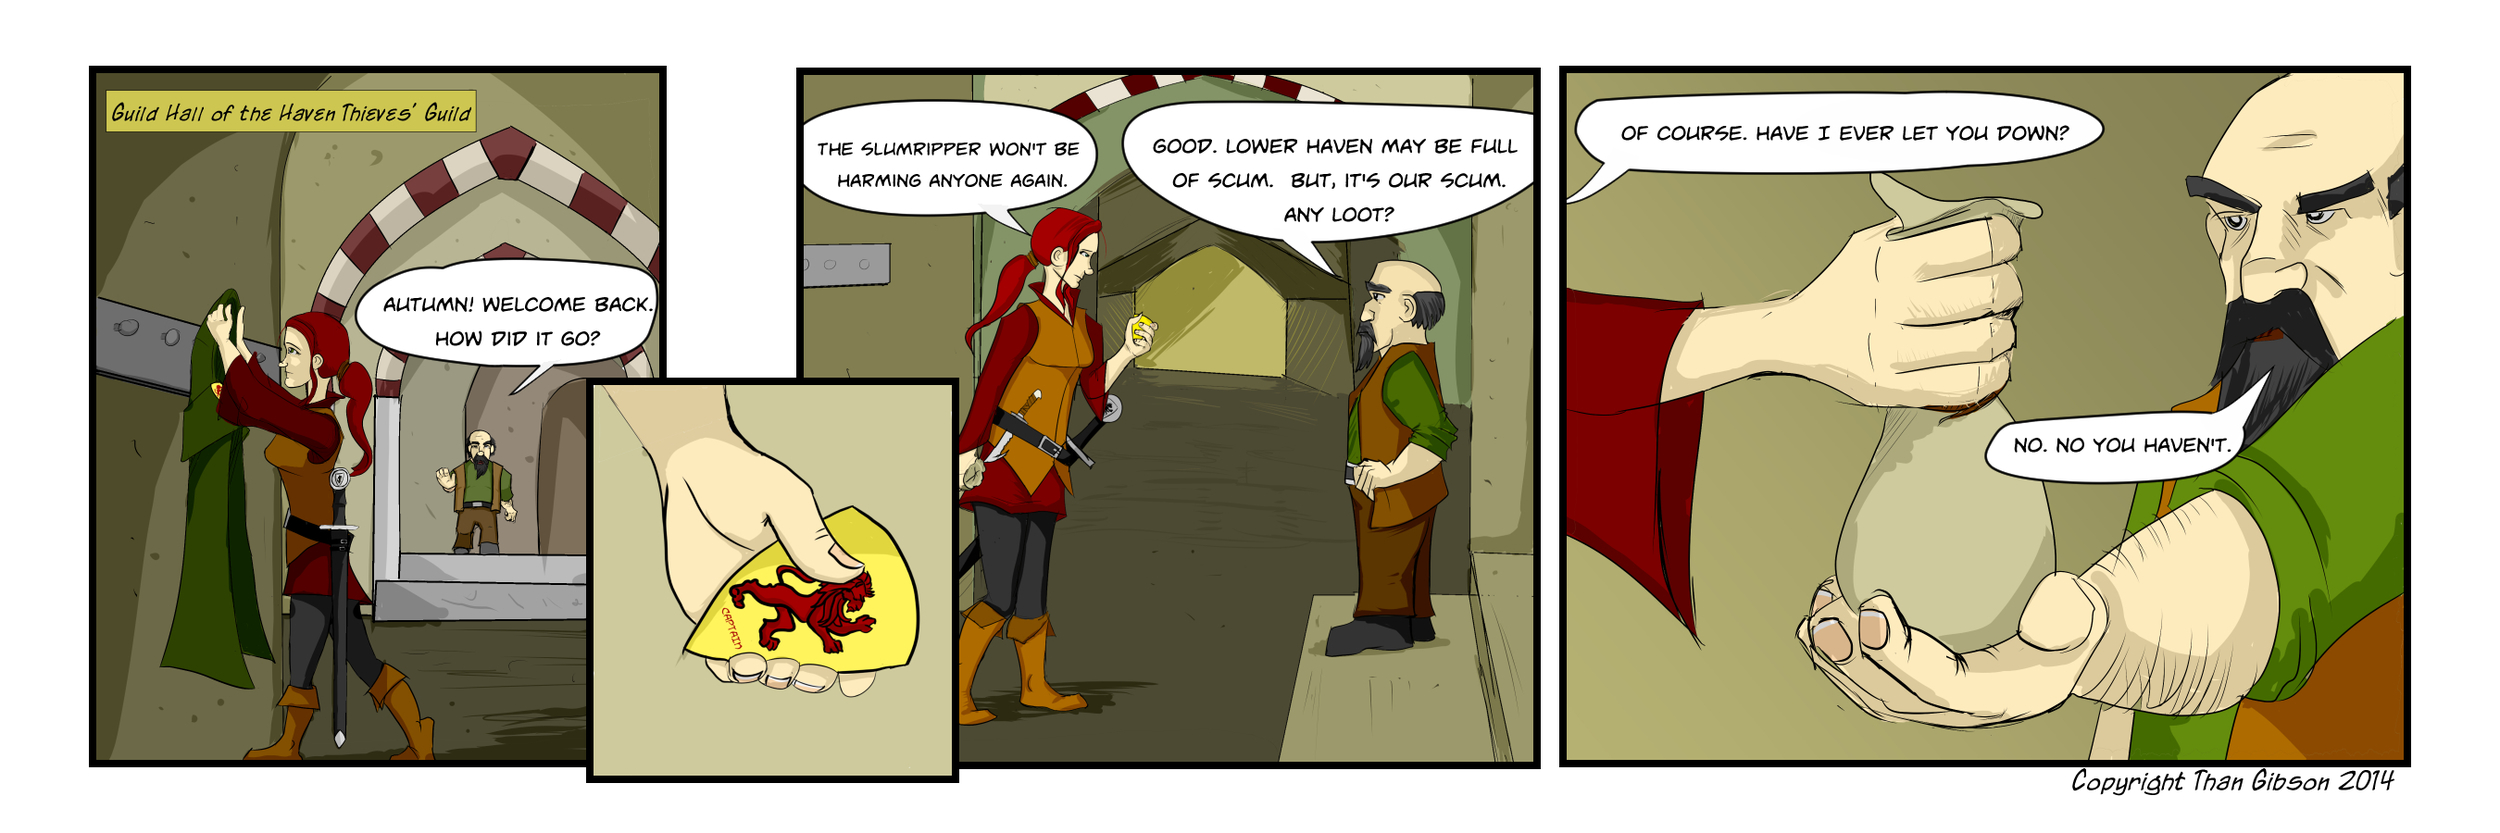 Strip 6 -Click the image for a larger view!